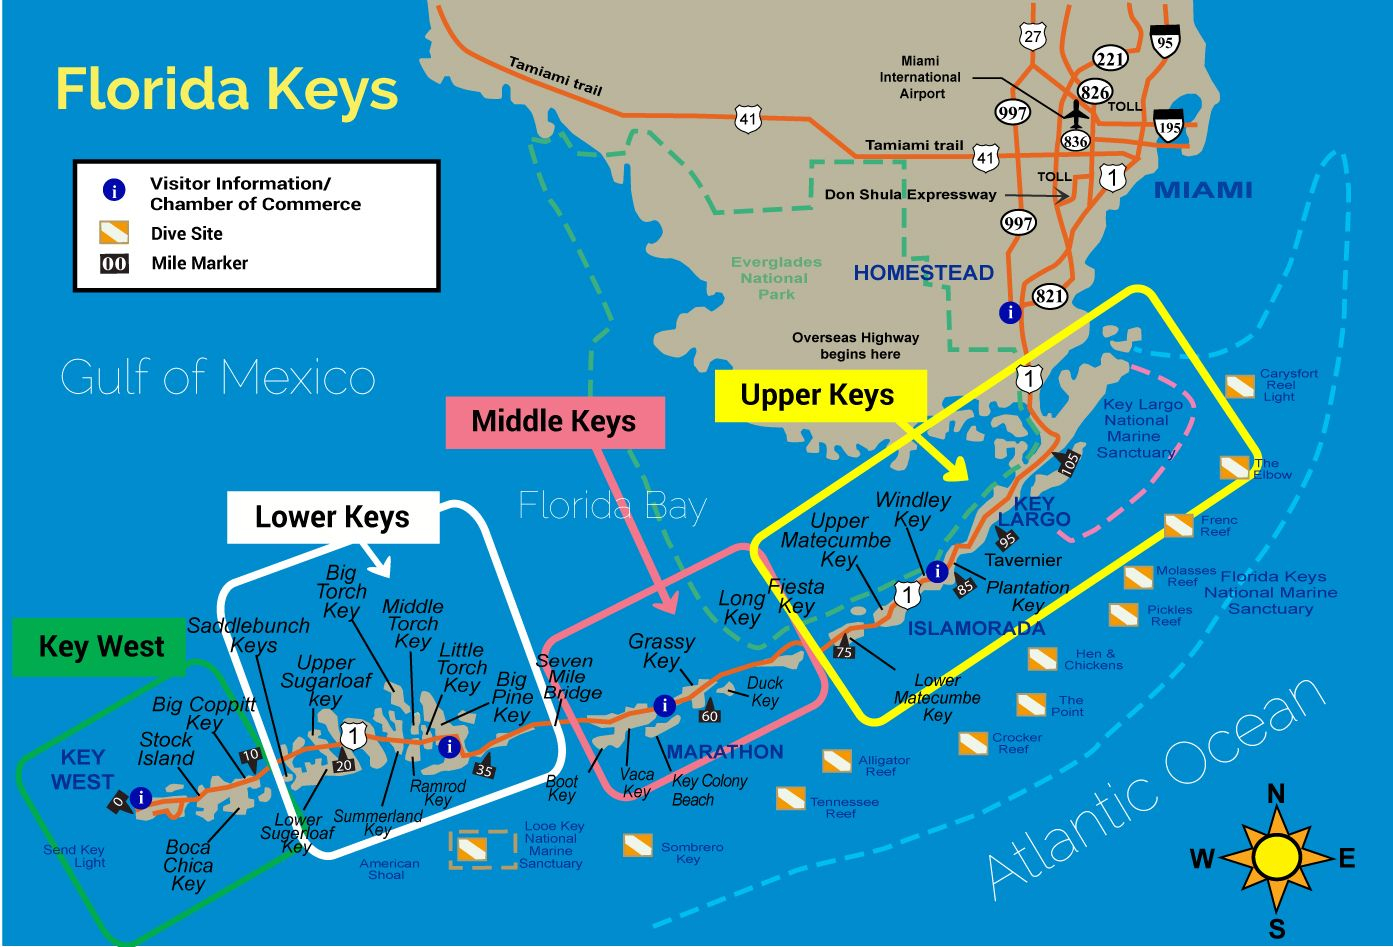 Map Of Areas Servedflorida Keys Vacation Rentals | Vacation - Map Of Florida Keys Hotels